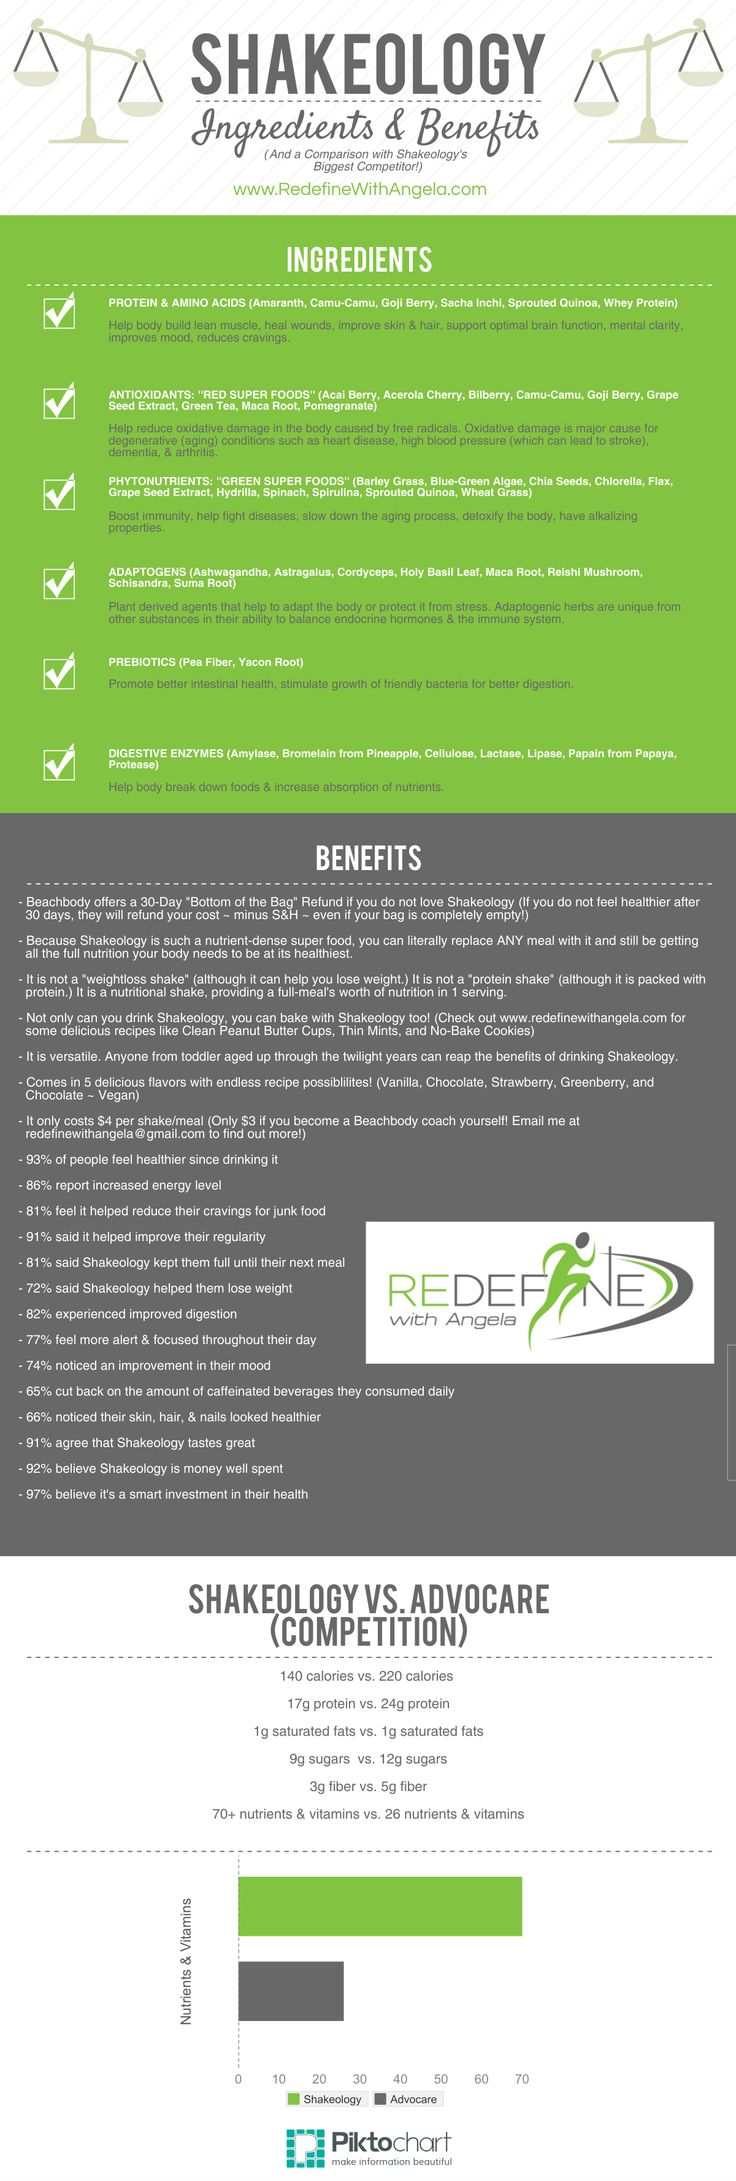 EVERYTHING you EVER wanted to know about SHAKEOLOGY in 1 Infographic ~ ingredients, benefits, comparison w/ top competitor, etc. Interested in trying a sample of Shakeology? Email me at redefinewithangela@gmail.com. (Cost is $5 to cover shipping.) #redefine #redefinewithangela #shake #vanilla #chocolate #strawberry #vegan #greenberry #breakfast #lunch #dinner #beachbody #health #healthy #nutrition #cleaneating #weightloss #mealplanning #shakeology #smoothie www.facebook.com/angelabuckfitness